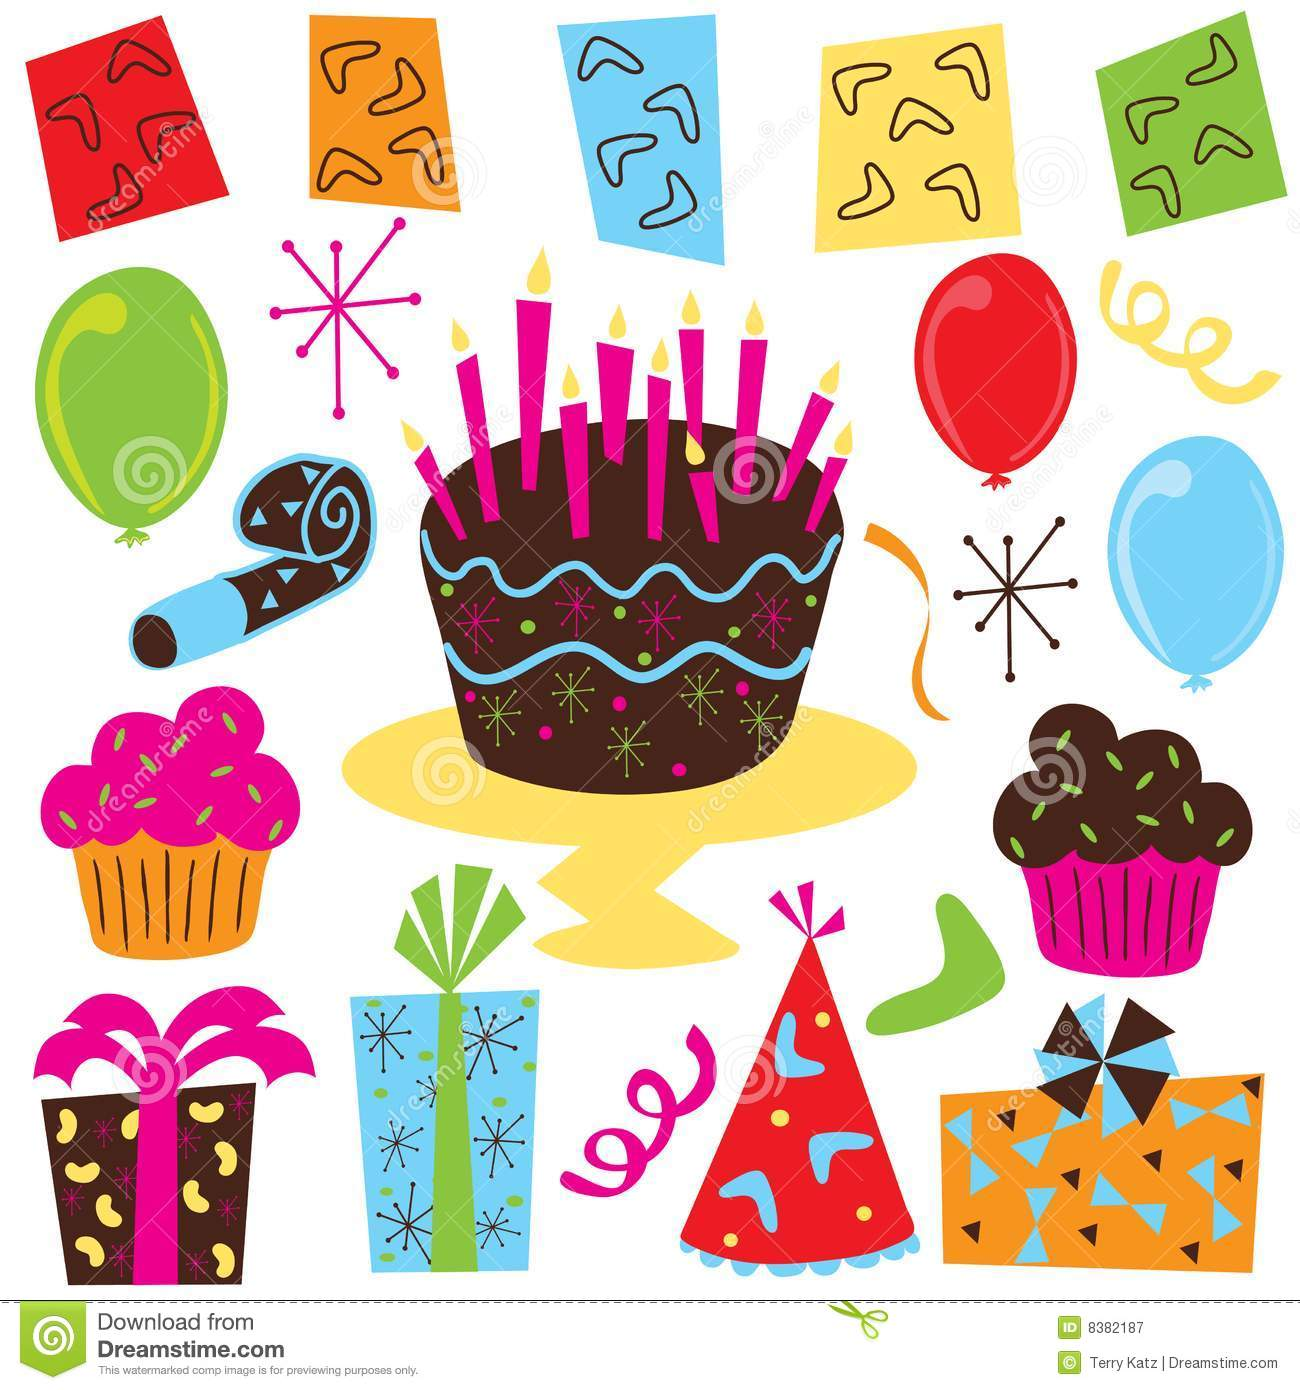 retro birthday party clip art stock vector illustration birthday party clipart 9-10 years old birthday party clip art free images